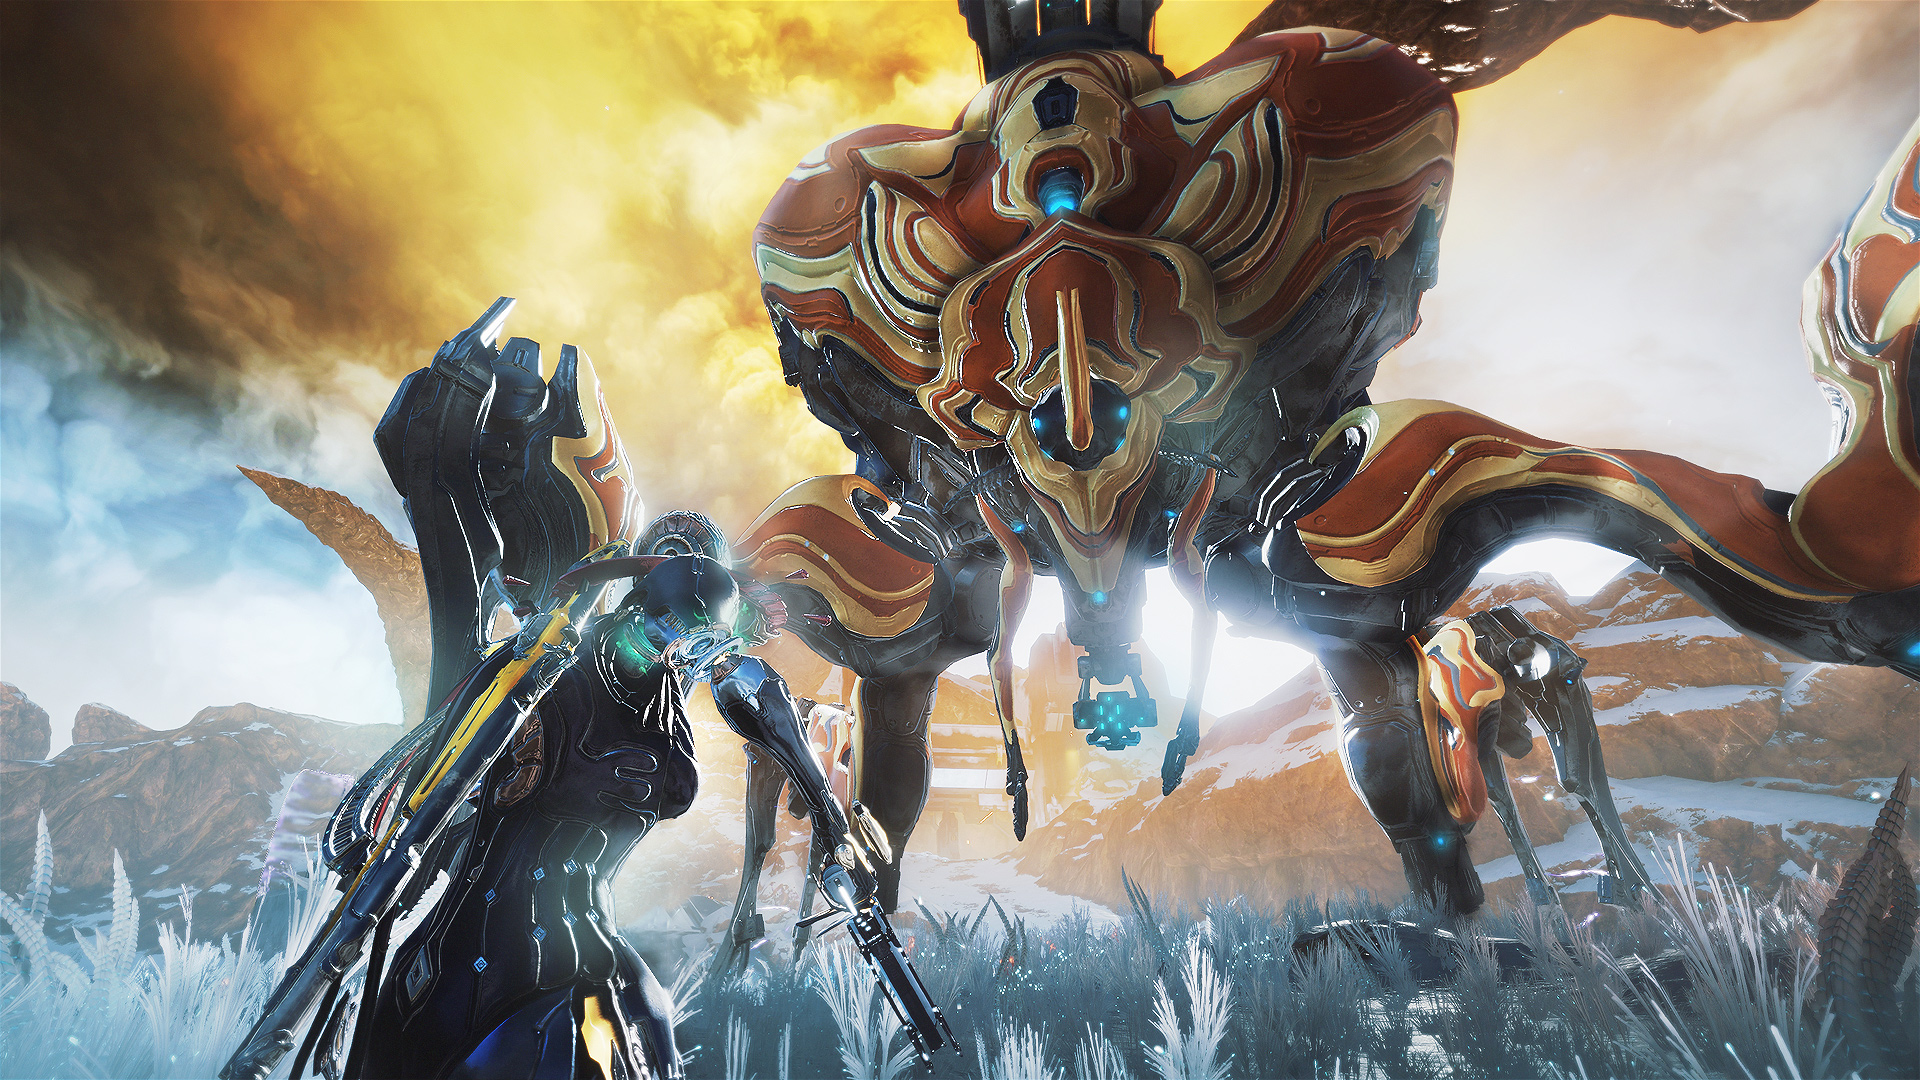 Warframe's new expansion is a stunning alien landscape full of giant robo-bugs | PC Gamer